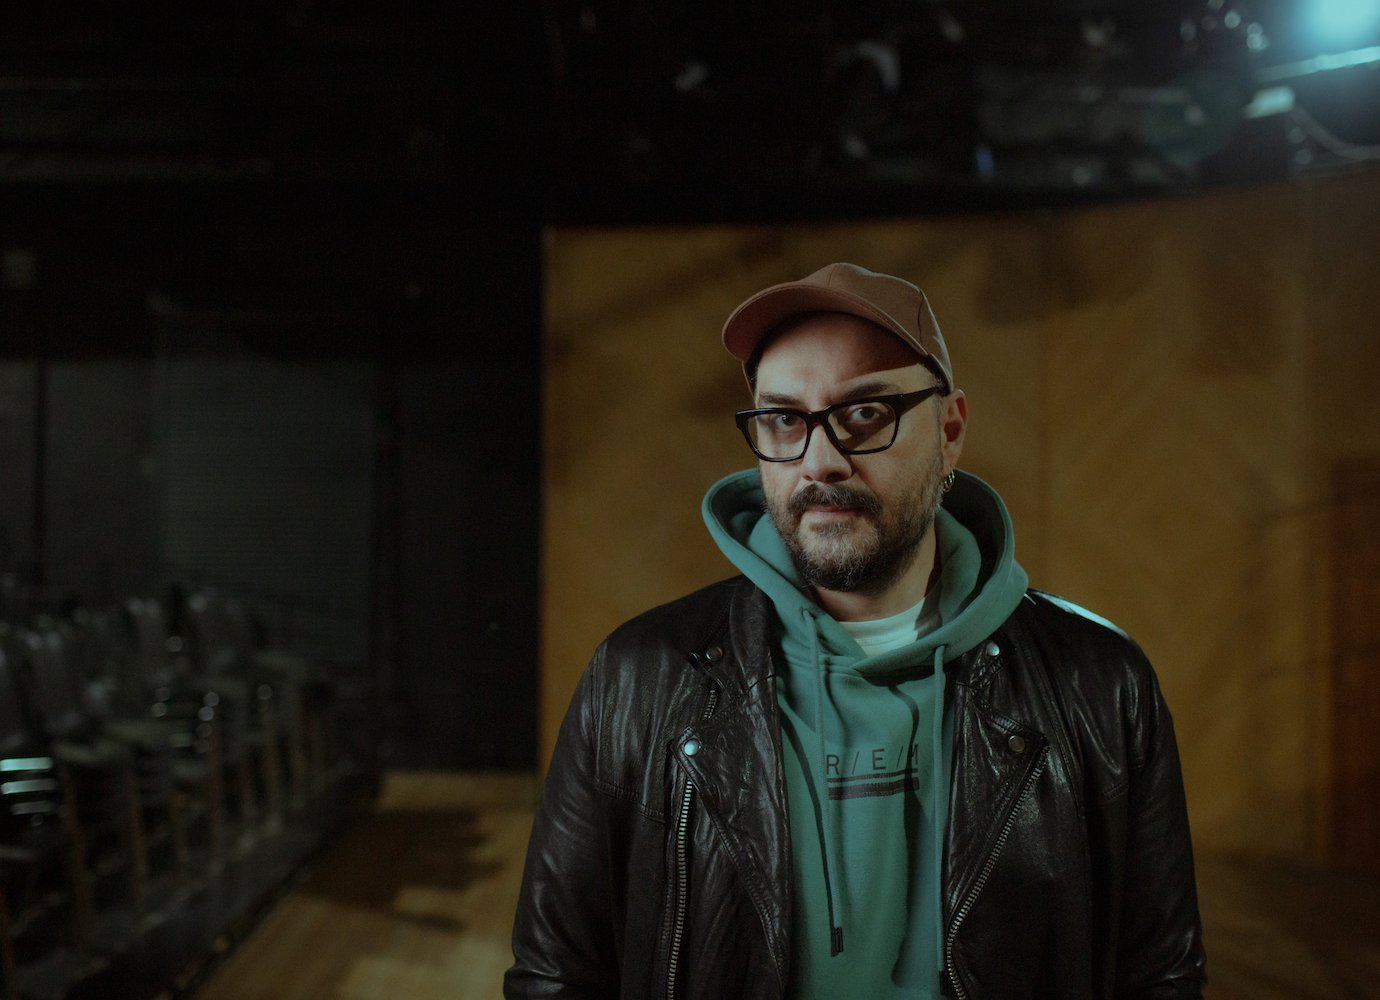 'Culture is worth suffering for': the rise and fall of Kirill Serebrennikov